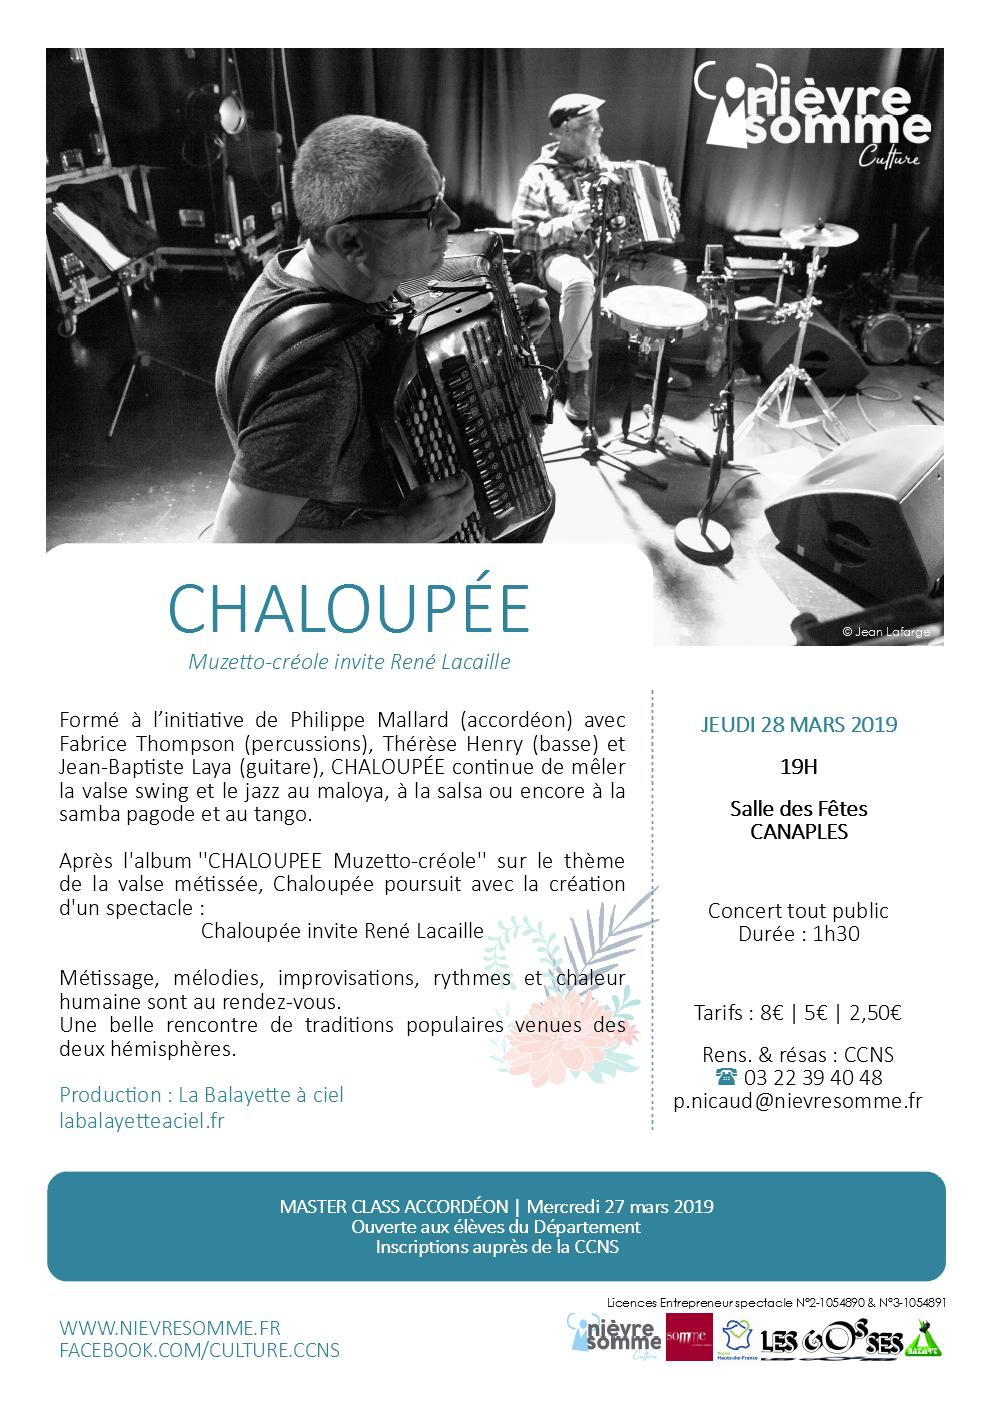 Spectacle CCNS chaloupee